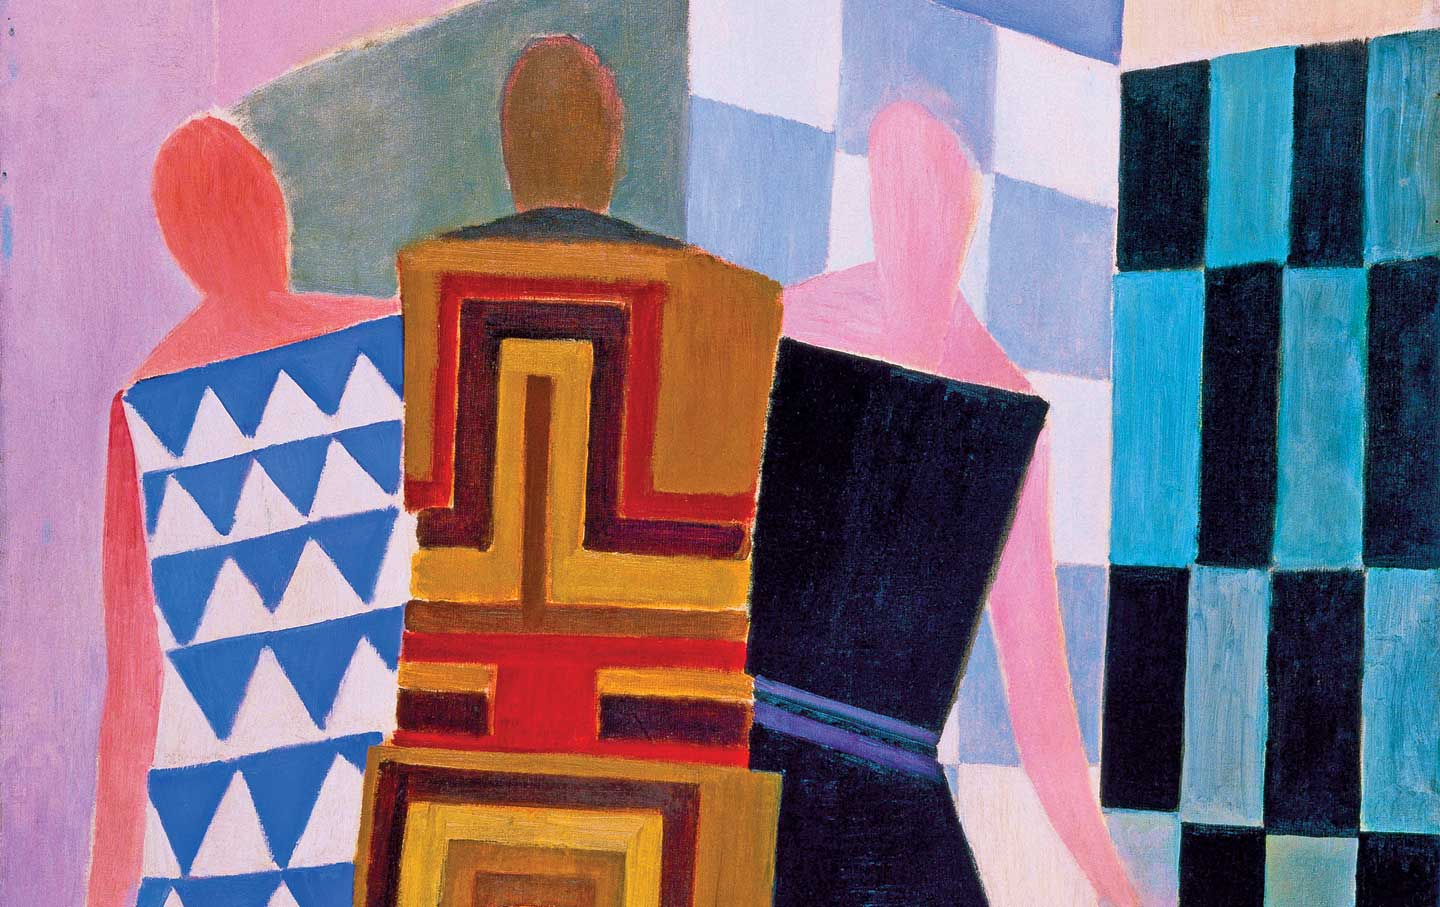 Sonia-Delaunay-Simultaneous-Dresses-The-Three-Women-1925